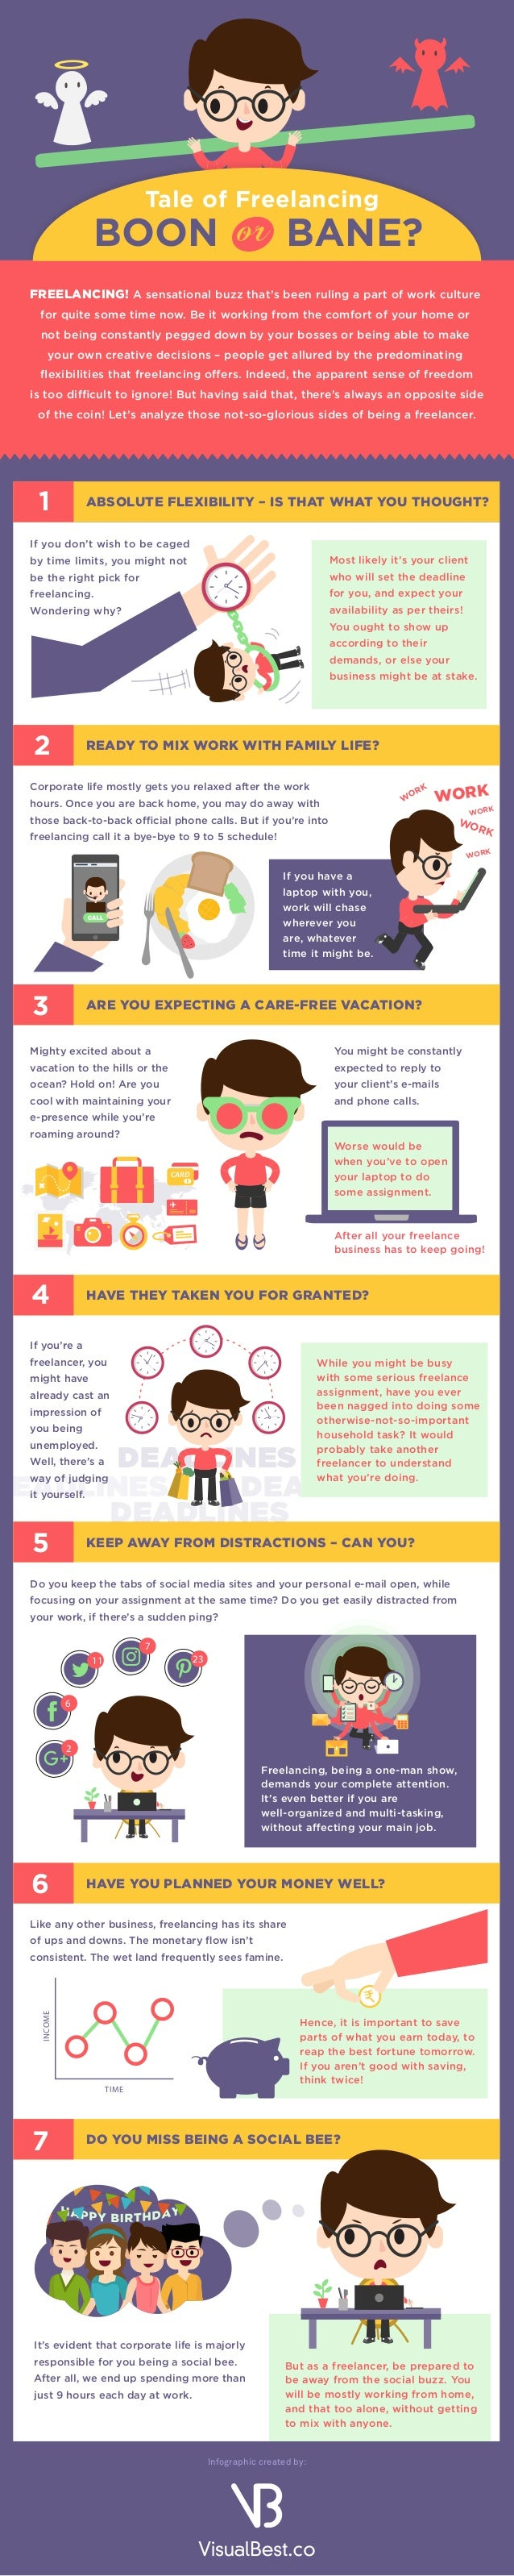 Infographic created by: CARD INCOME TIME Mighty excited about a vacation to the hills or the ocean? Hold on! Are you cool ...